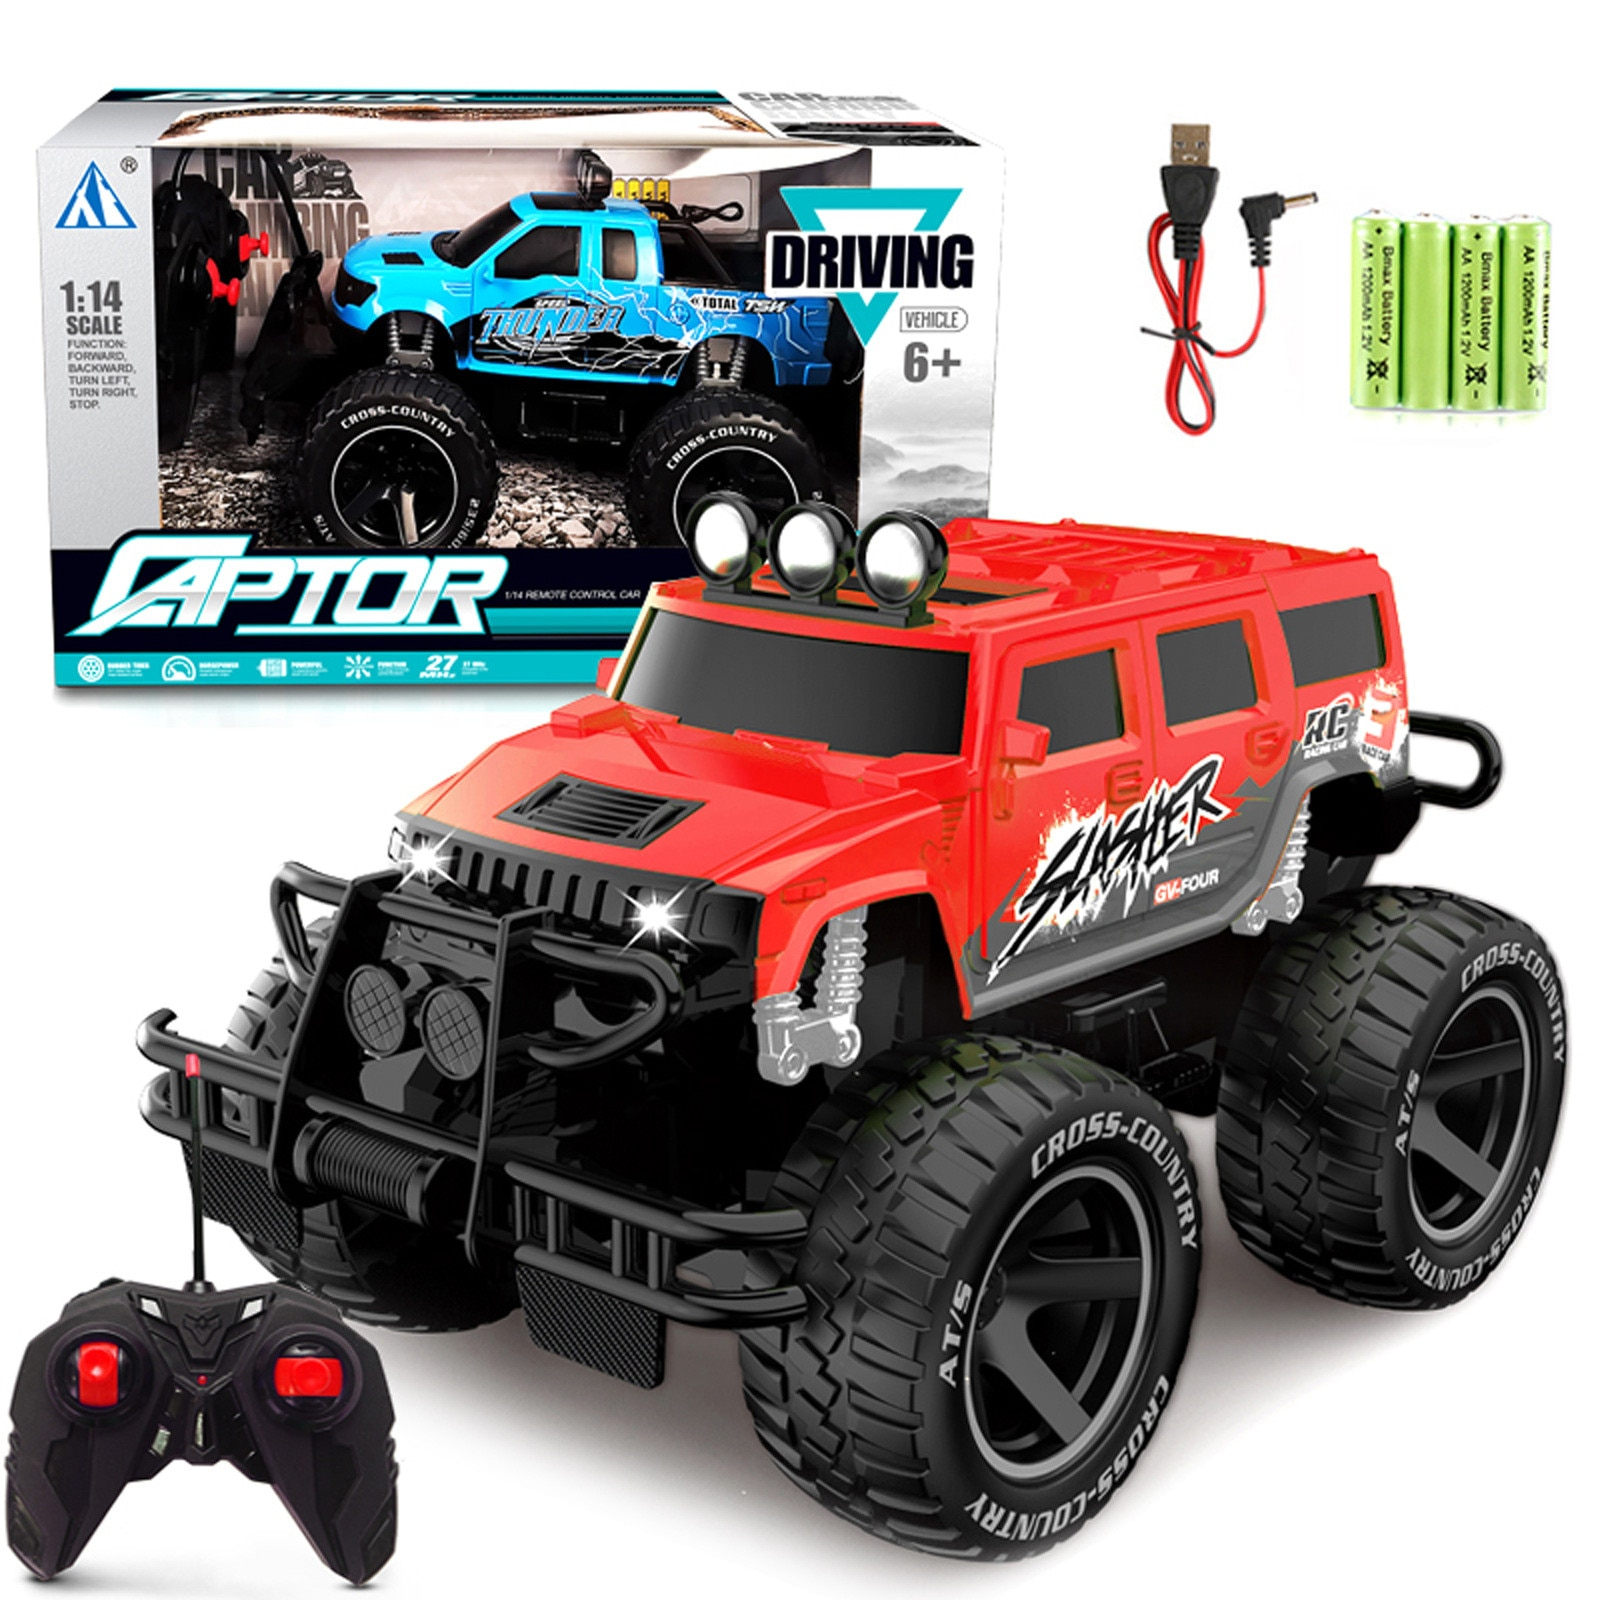 Rc Car Toys For Kids 1/14 Scale 15km/h 2wd Land Off-road With Car Light Remote Control Car Rc Toys C